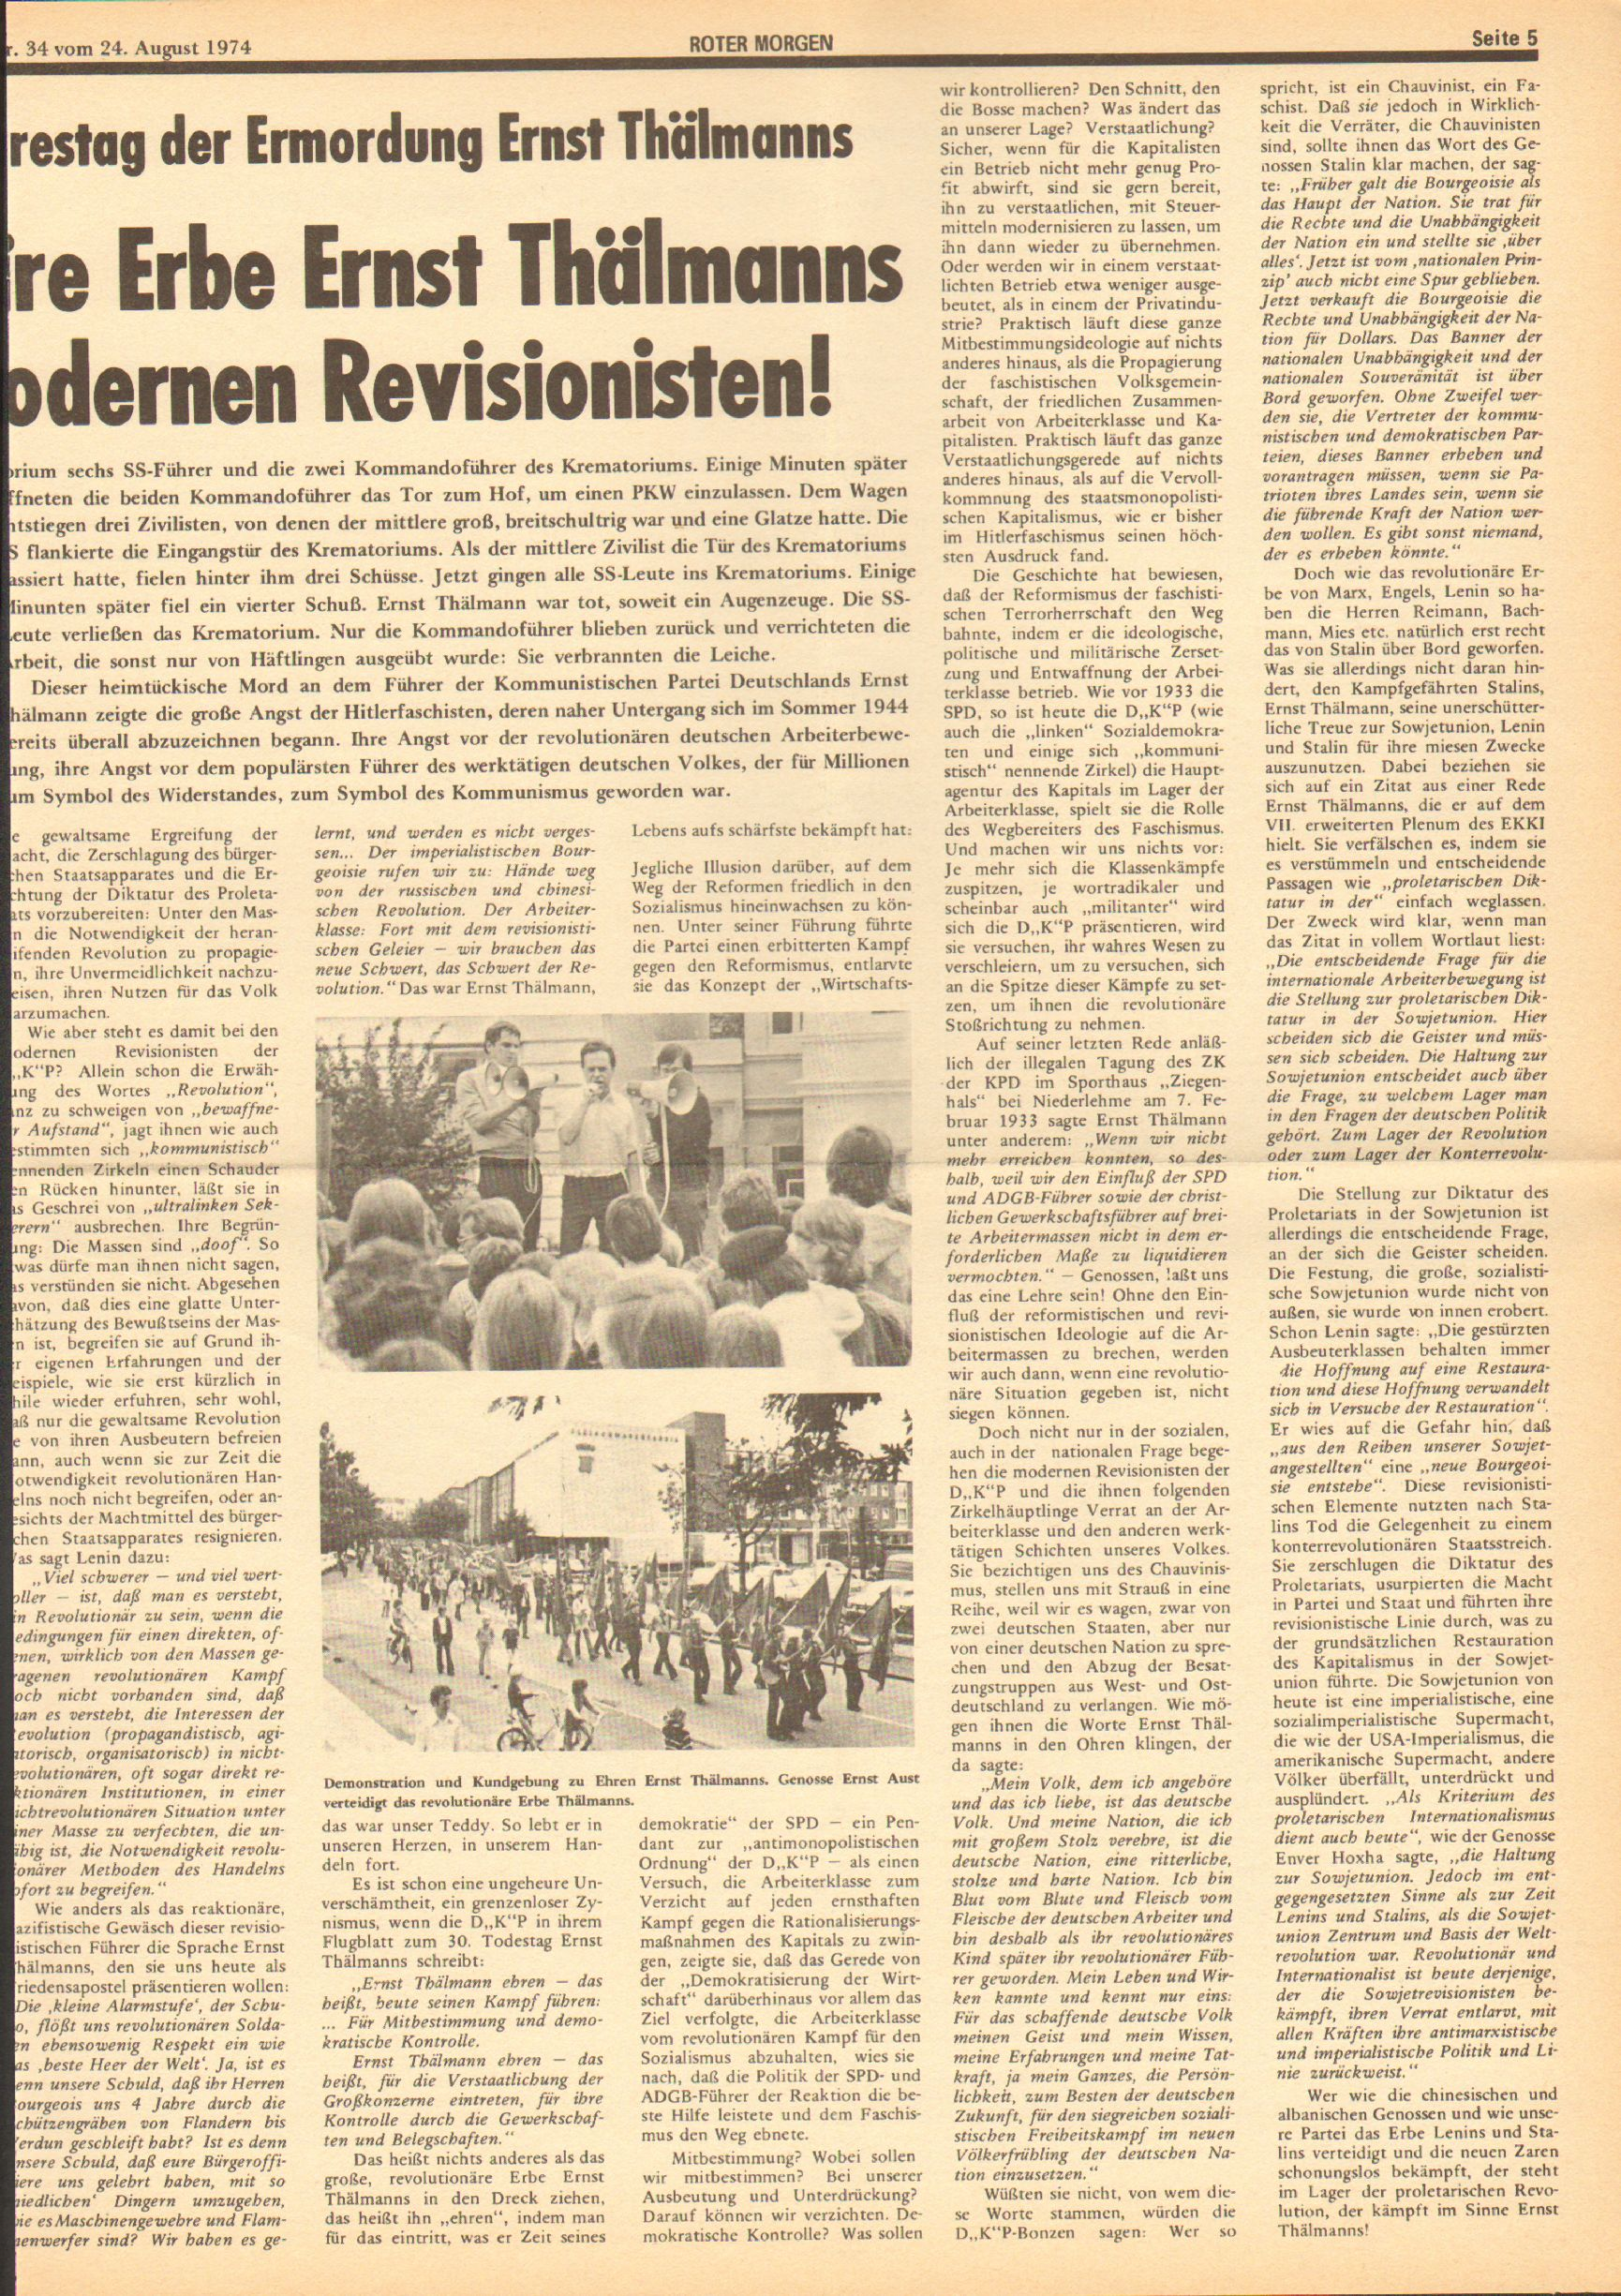 Roter Morgen, 8. Jg., 24. August 1974, Nr. 34, Seite 5